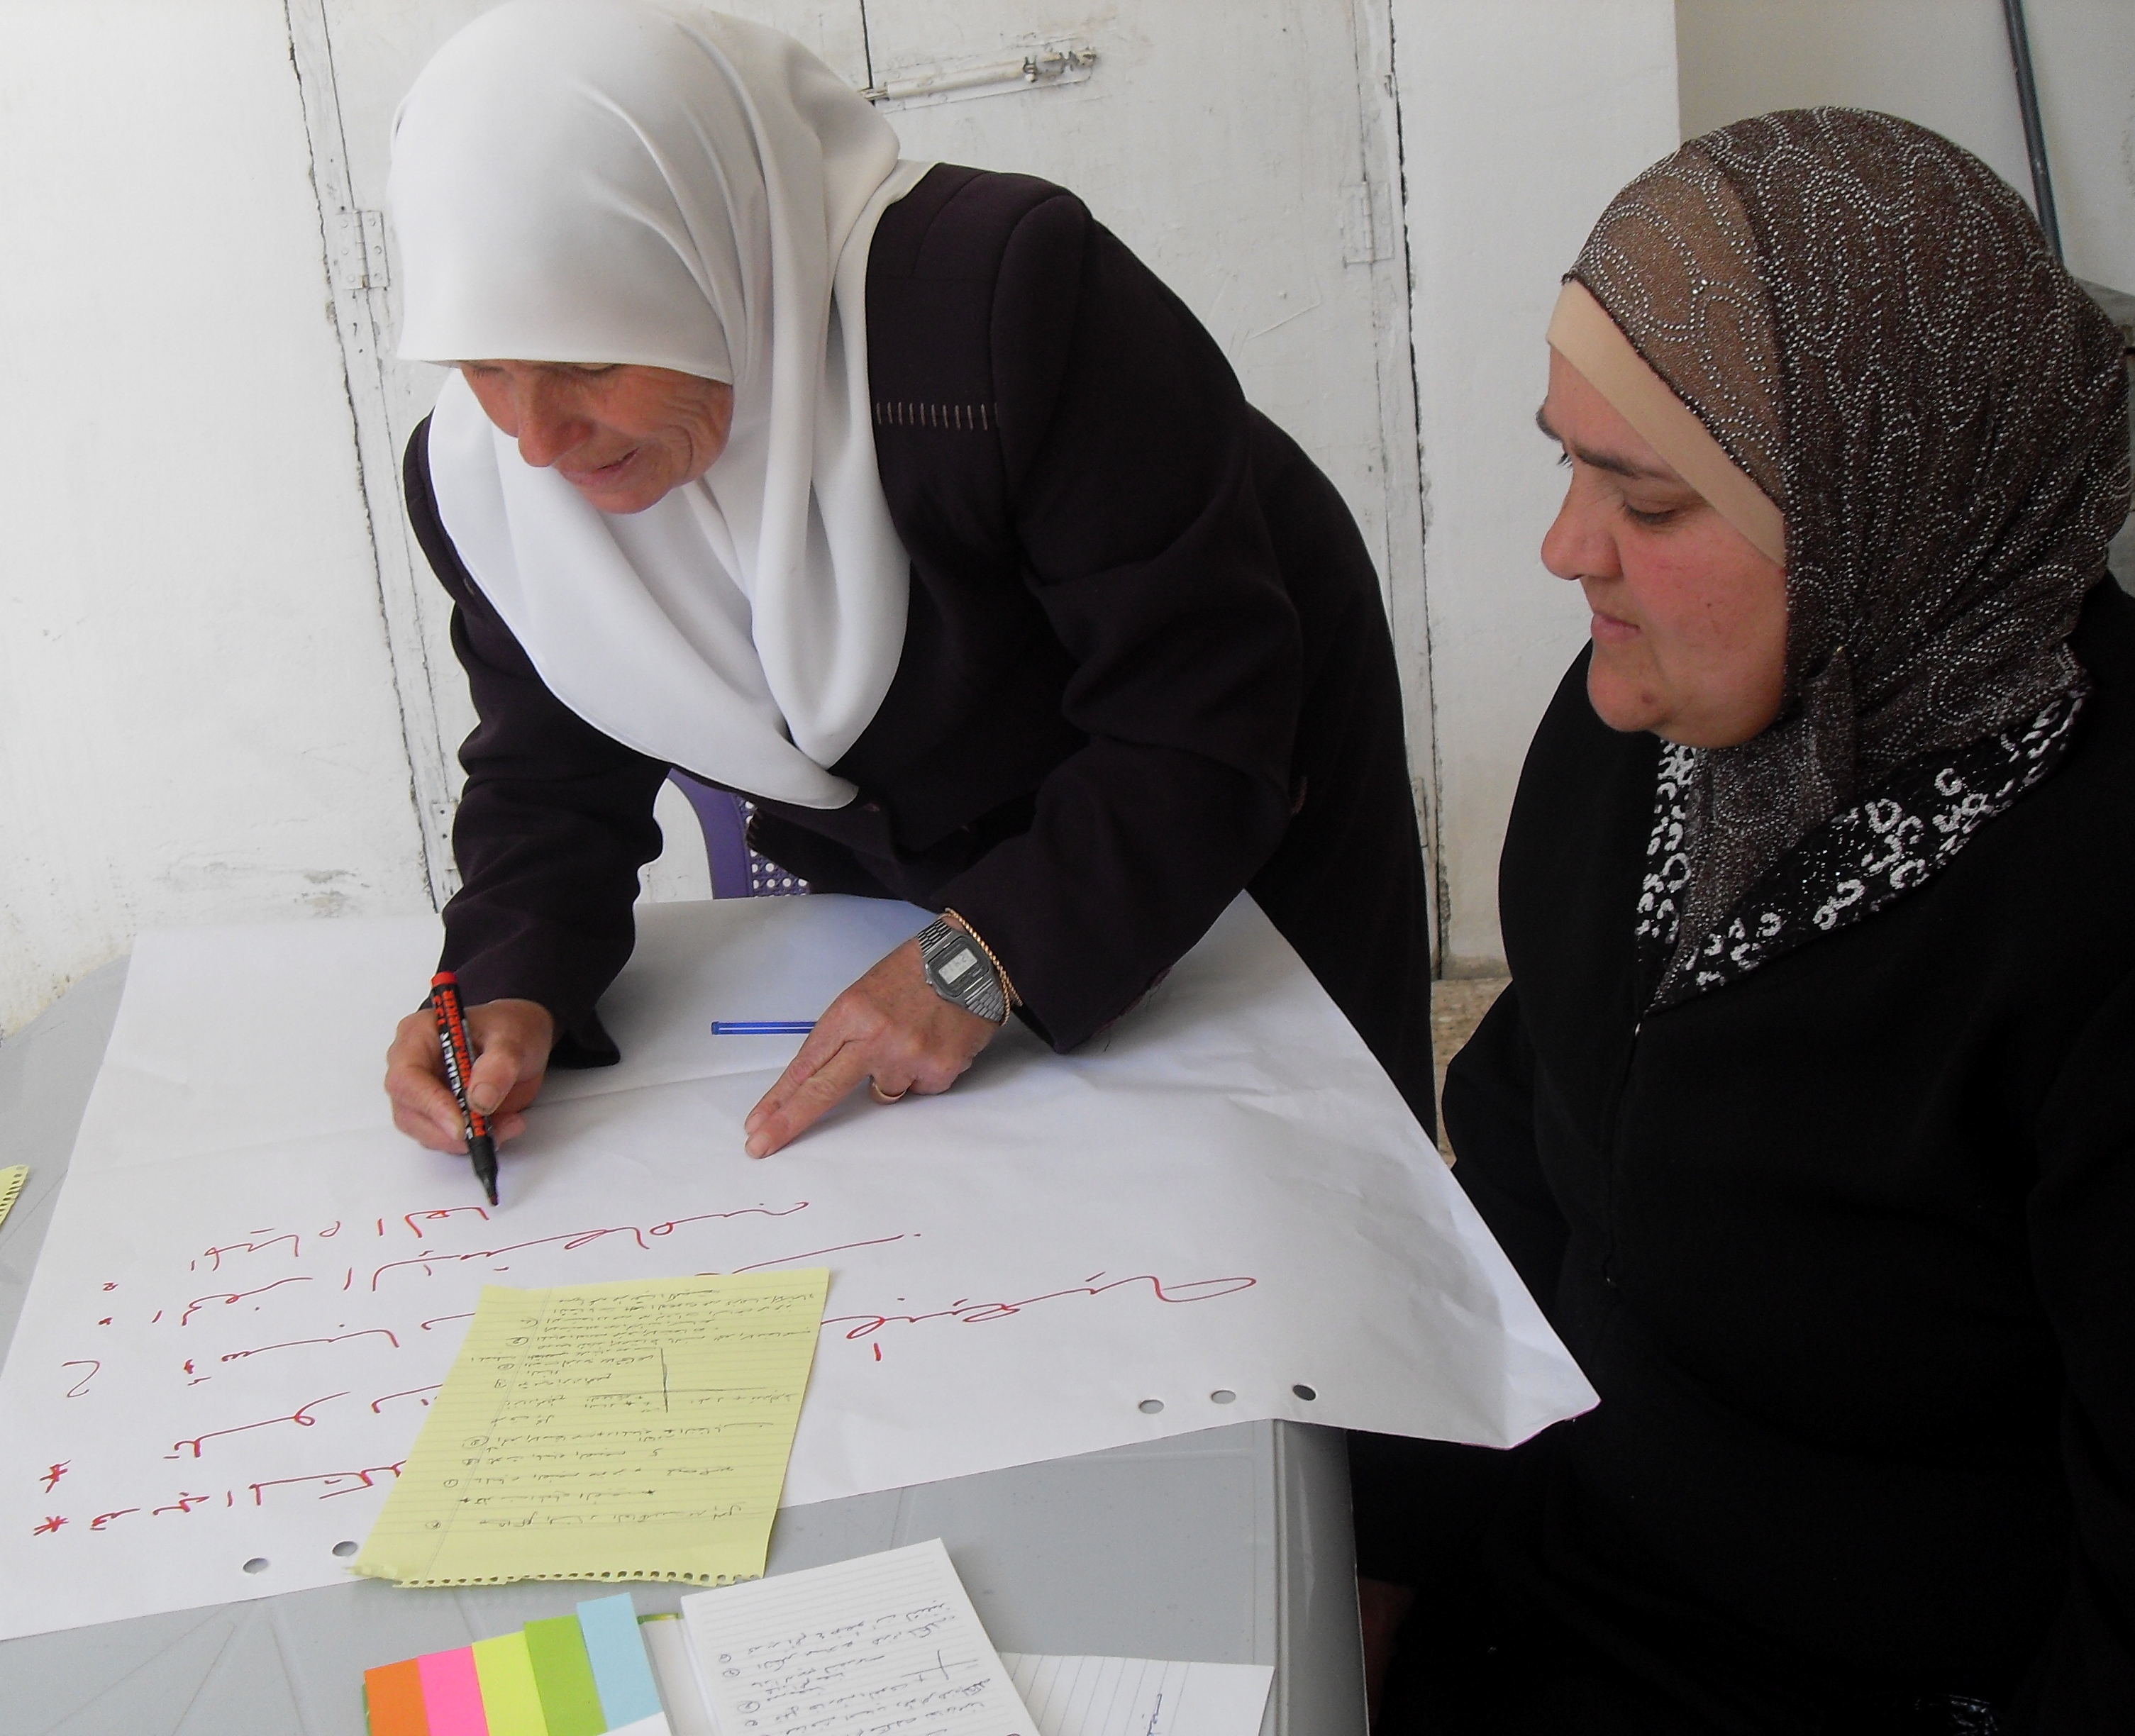 Can allies help Palestinians to reform aid? How?